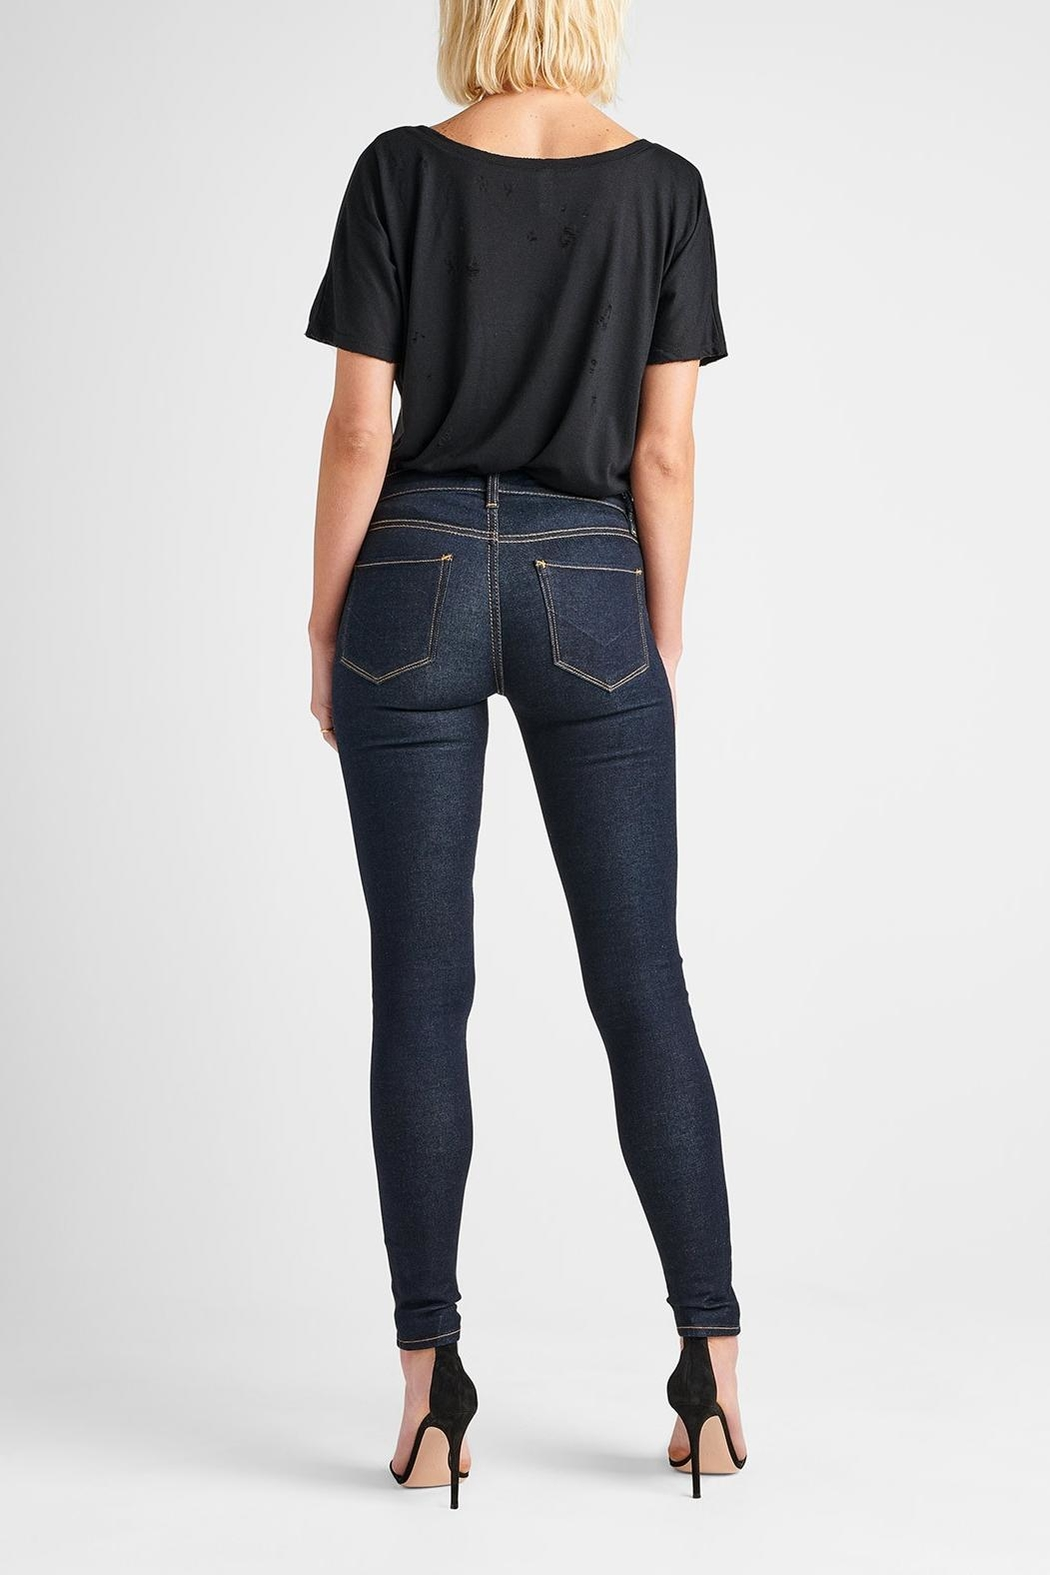 Hudson Jeans Nico Skinny Sunset-Blvd - Side Cropped Image